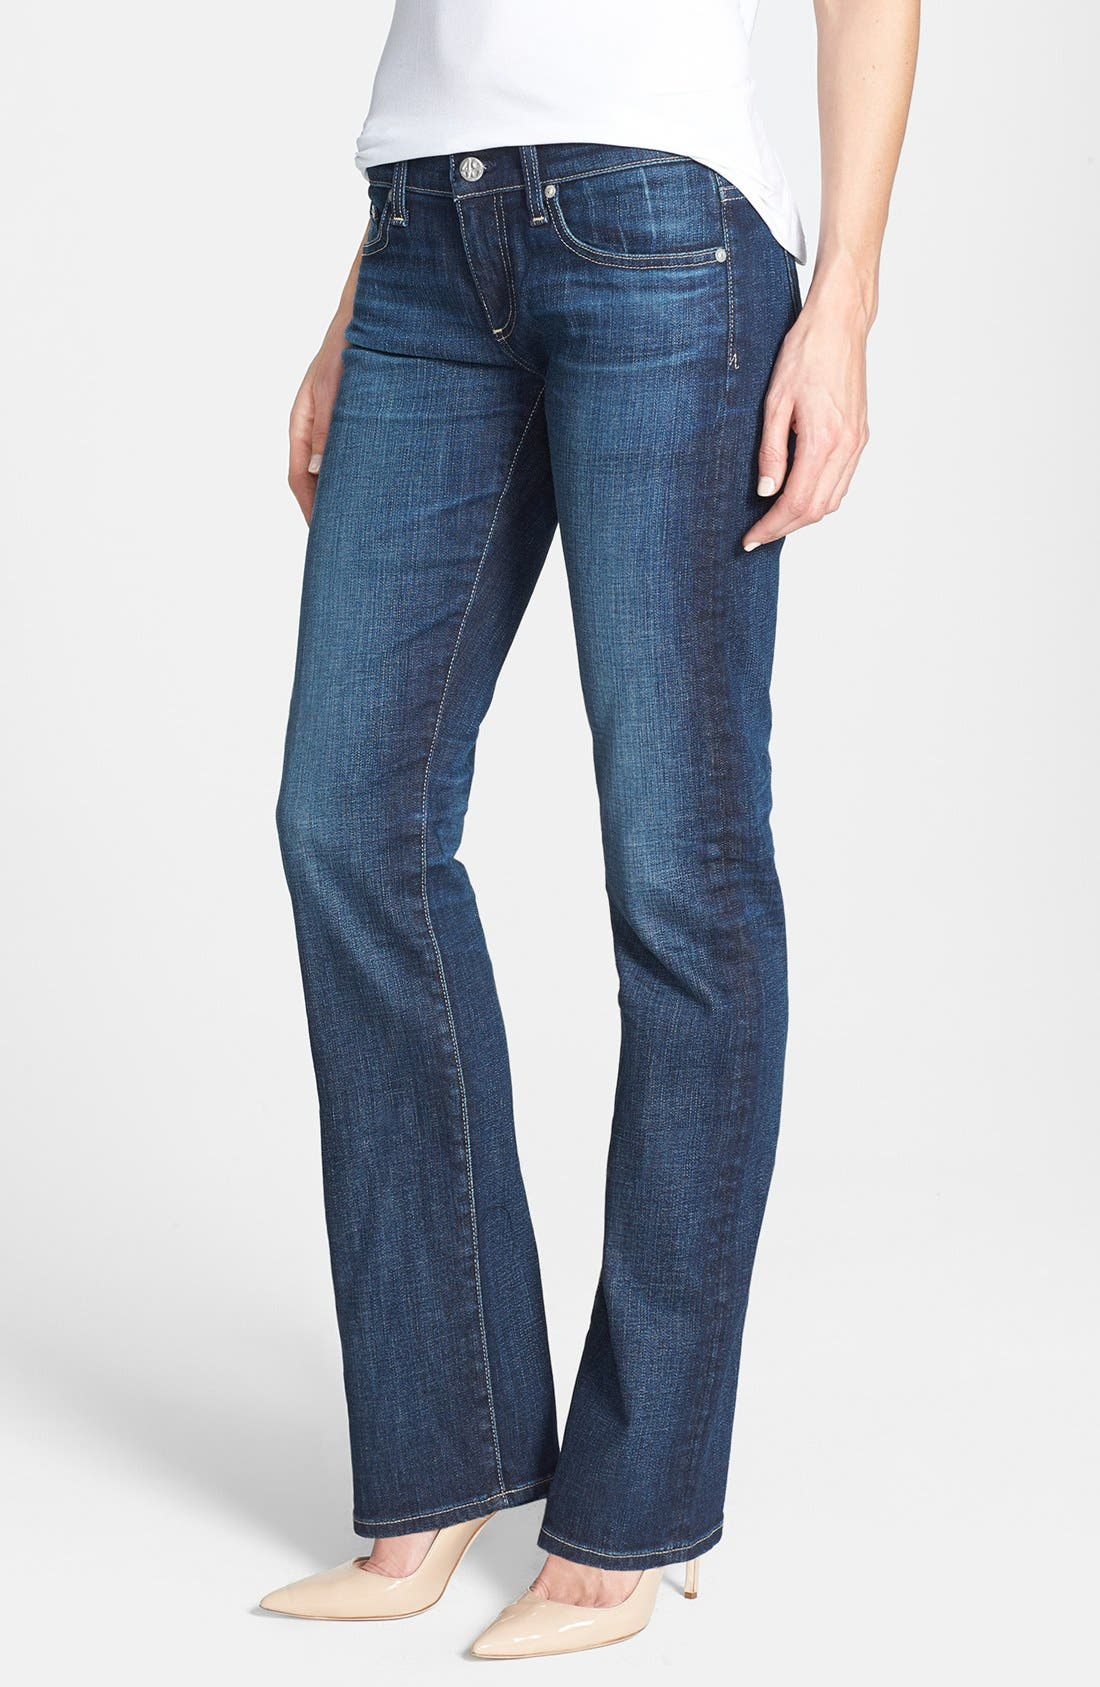 Alternate Image 1 Selected - AG 'The Tomboy' Relaxed Straight Leg Jeans (Six Year Compass)